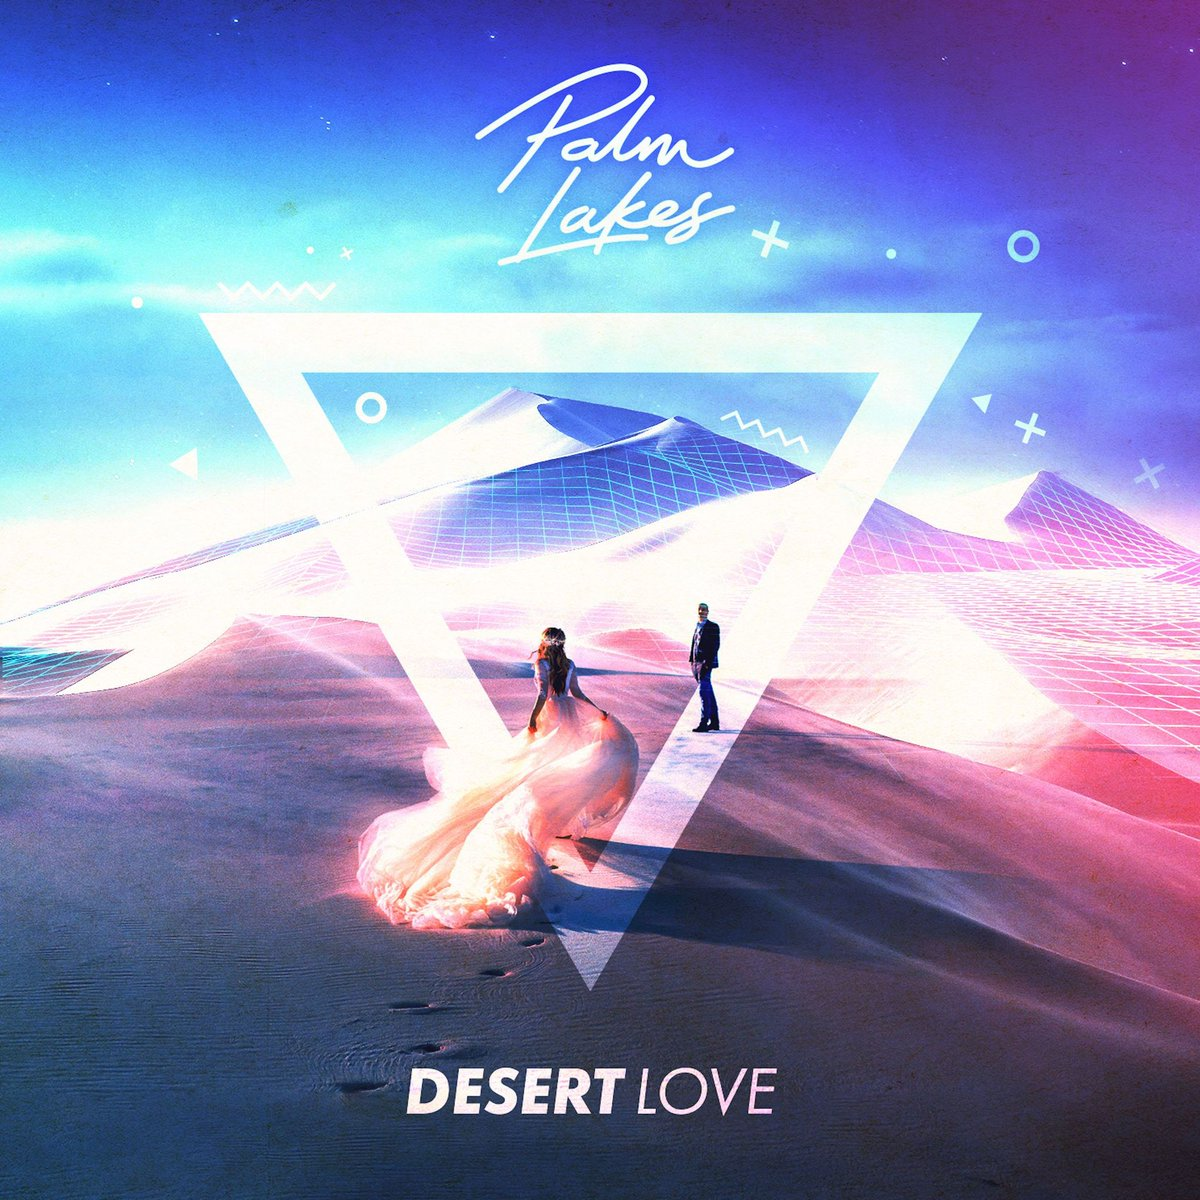 "@palmlakesmusic evokes 80s-inspired anthems and the magic of an endless summer, releasing the brand-new single ""Desert Love."" Read more on #NovaMusicblog #DesertLove #PalmLakes #newmusicalert https://t.co/YY8NEDGQB6 https://t.co/Zcqypvi8DA"